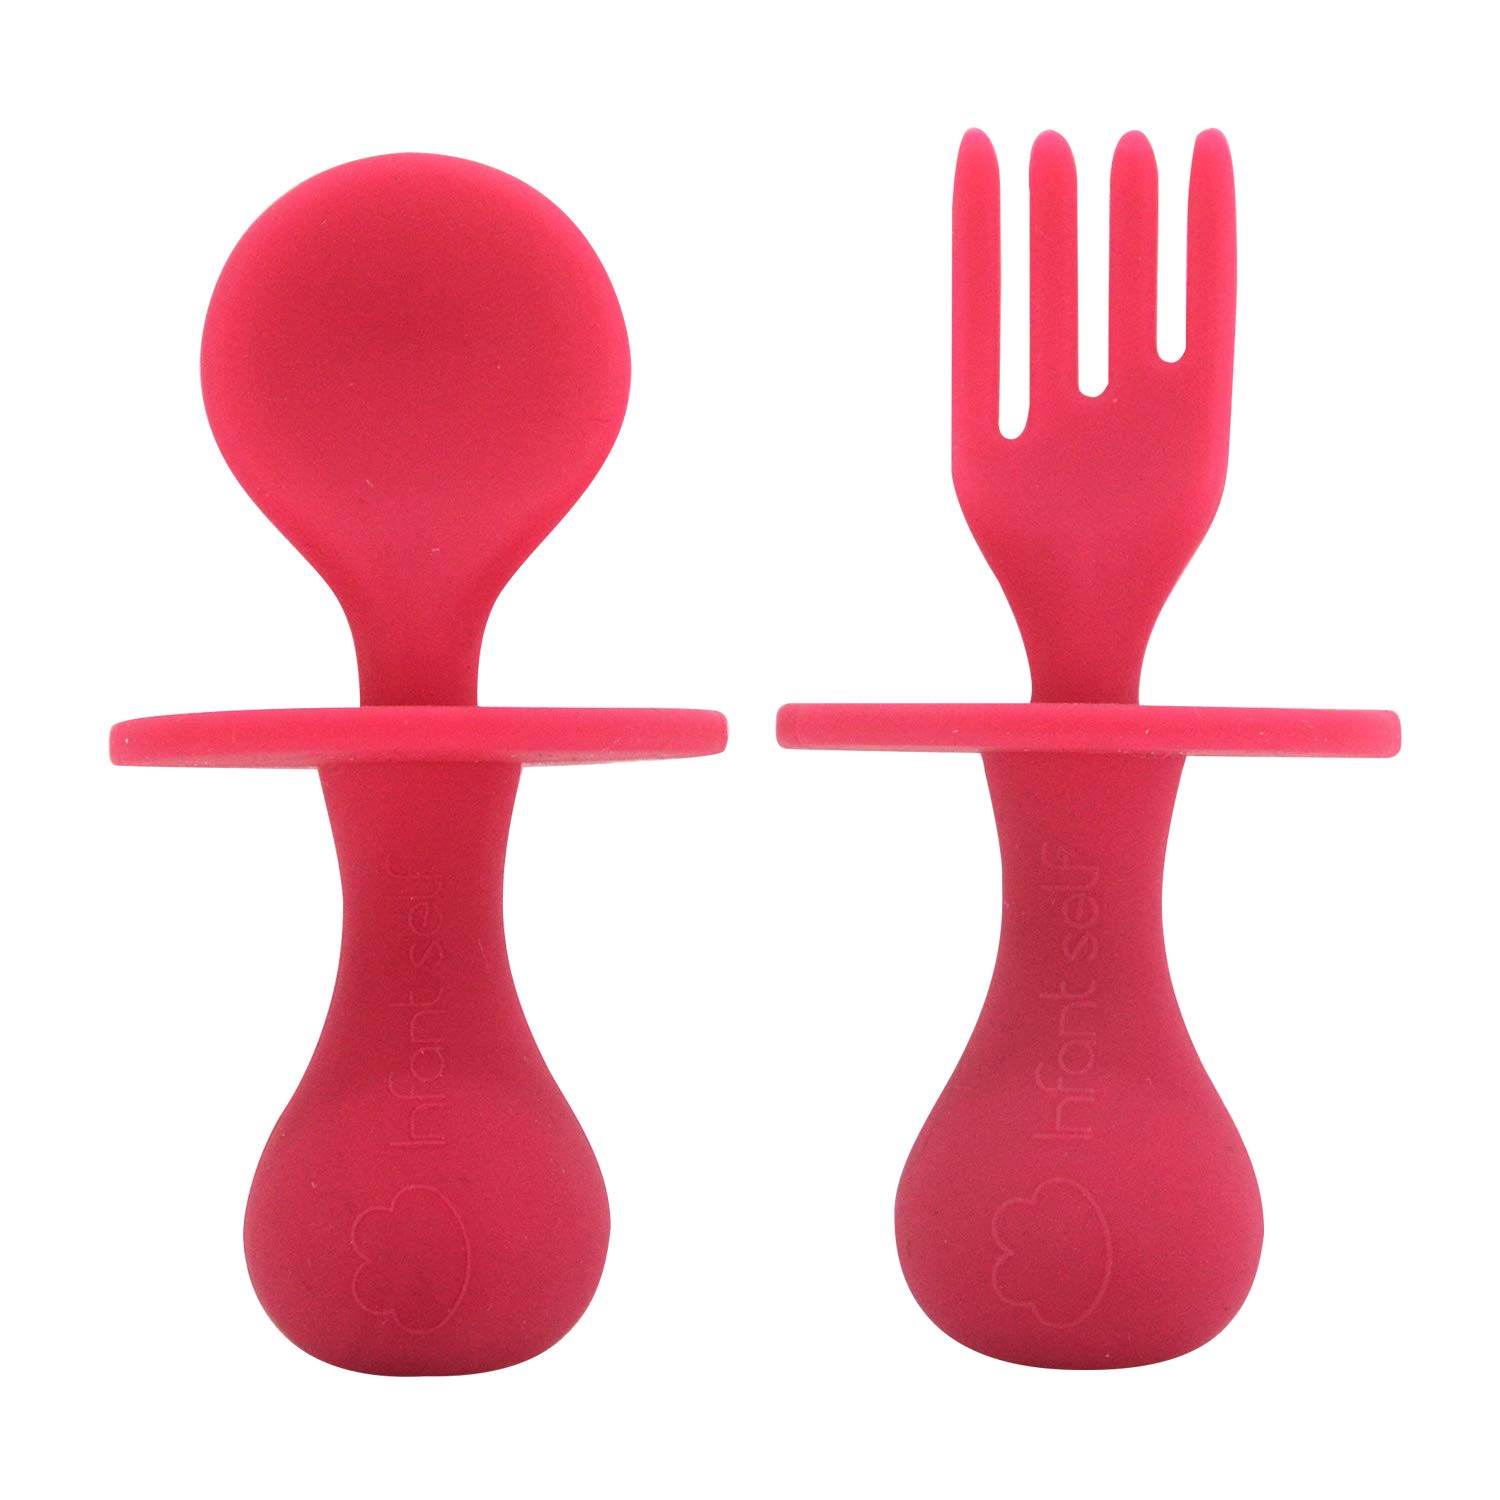 Infant self Baby Spoon First Self Feeding Spoon Fork Utensil Set for Baby Led Weaning and Toddlers BPA Free (red)